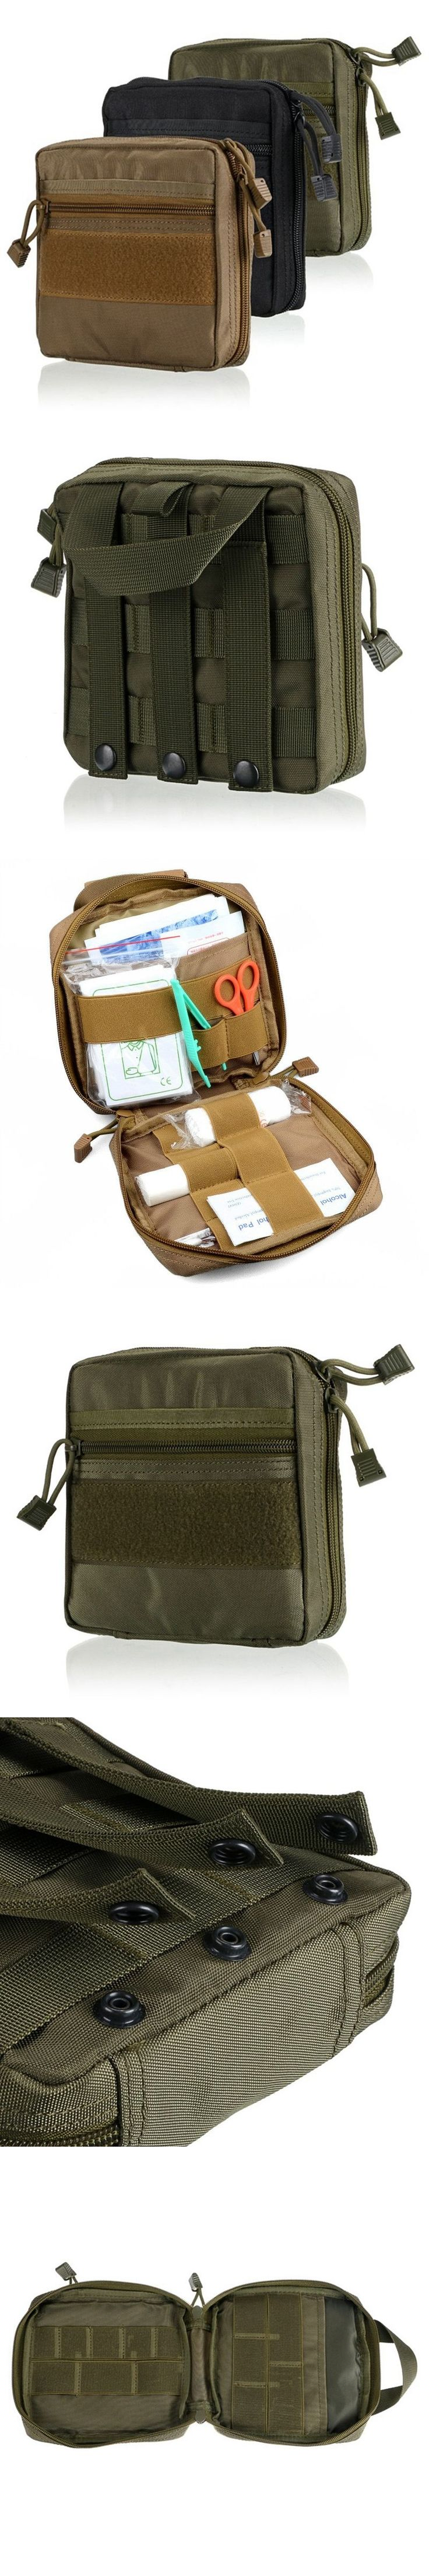 MOLLE EMT First Aid Kit Survival Bag Tactical Multi Medical Kit Utility Tool Belt Pouch Mew Arrival